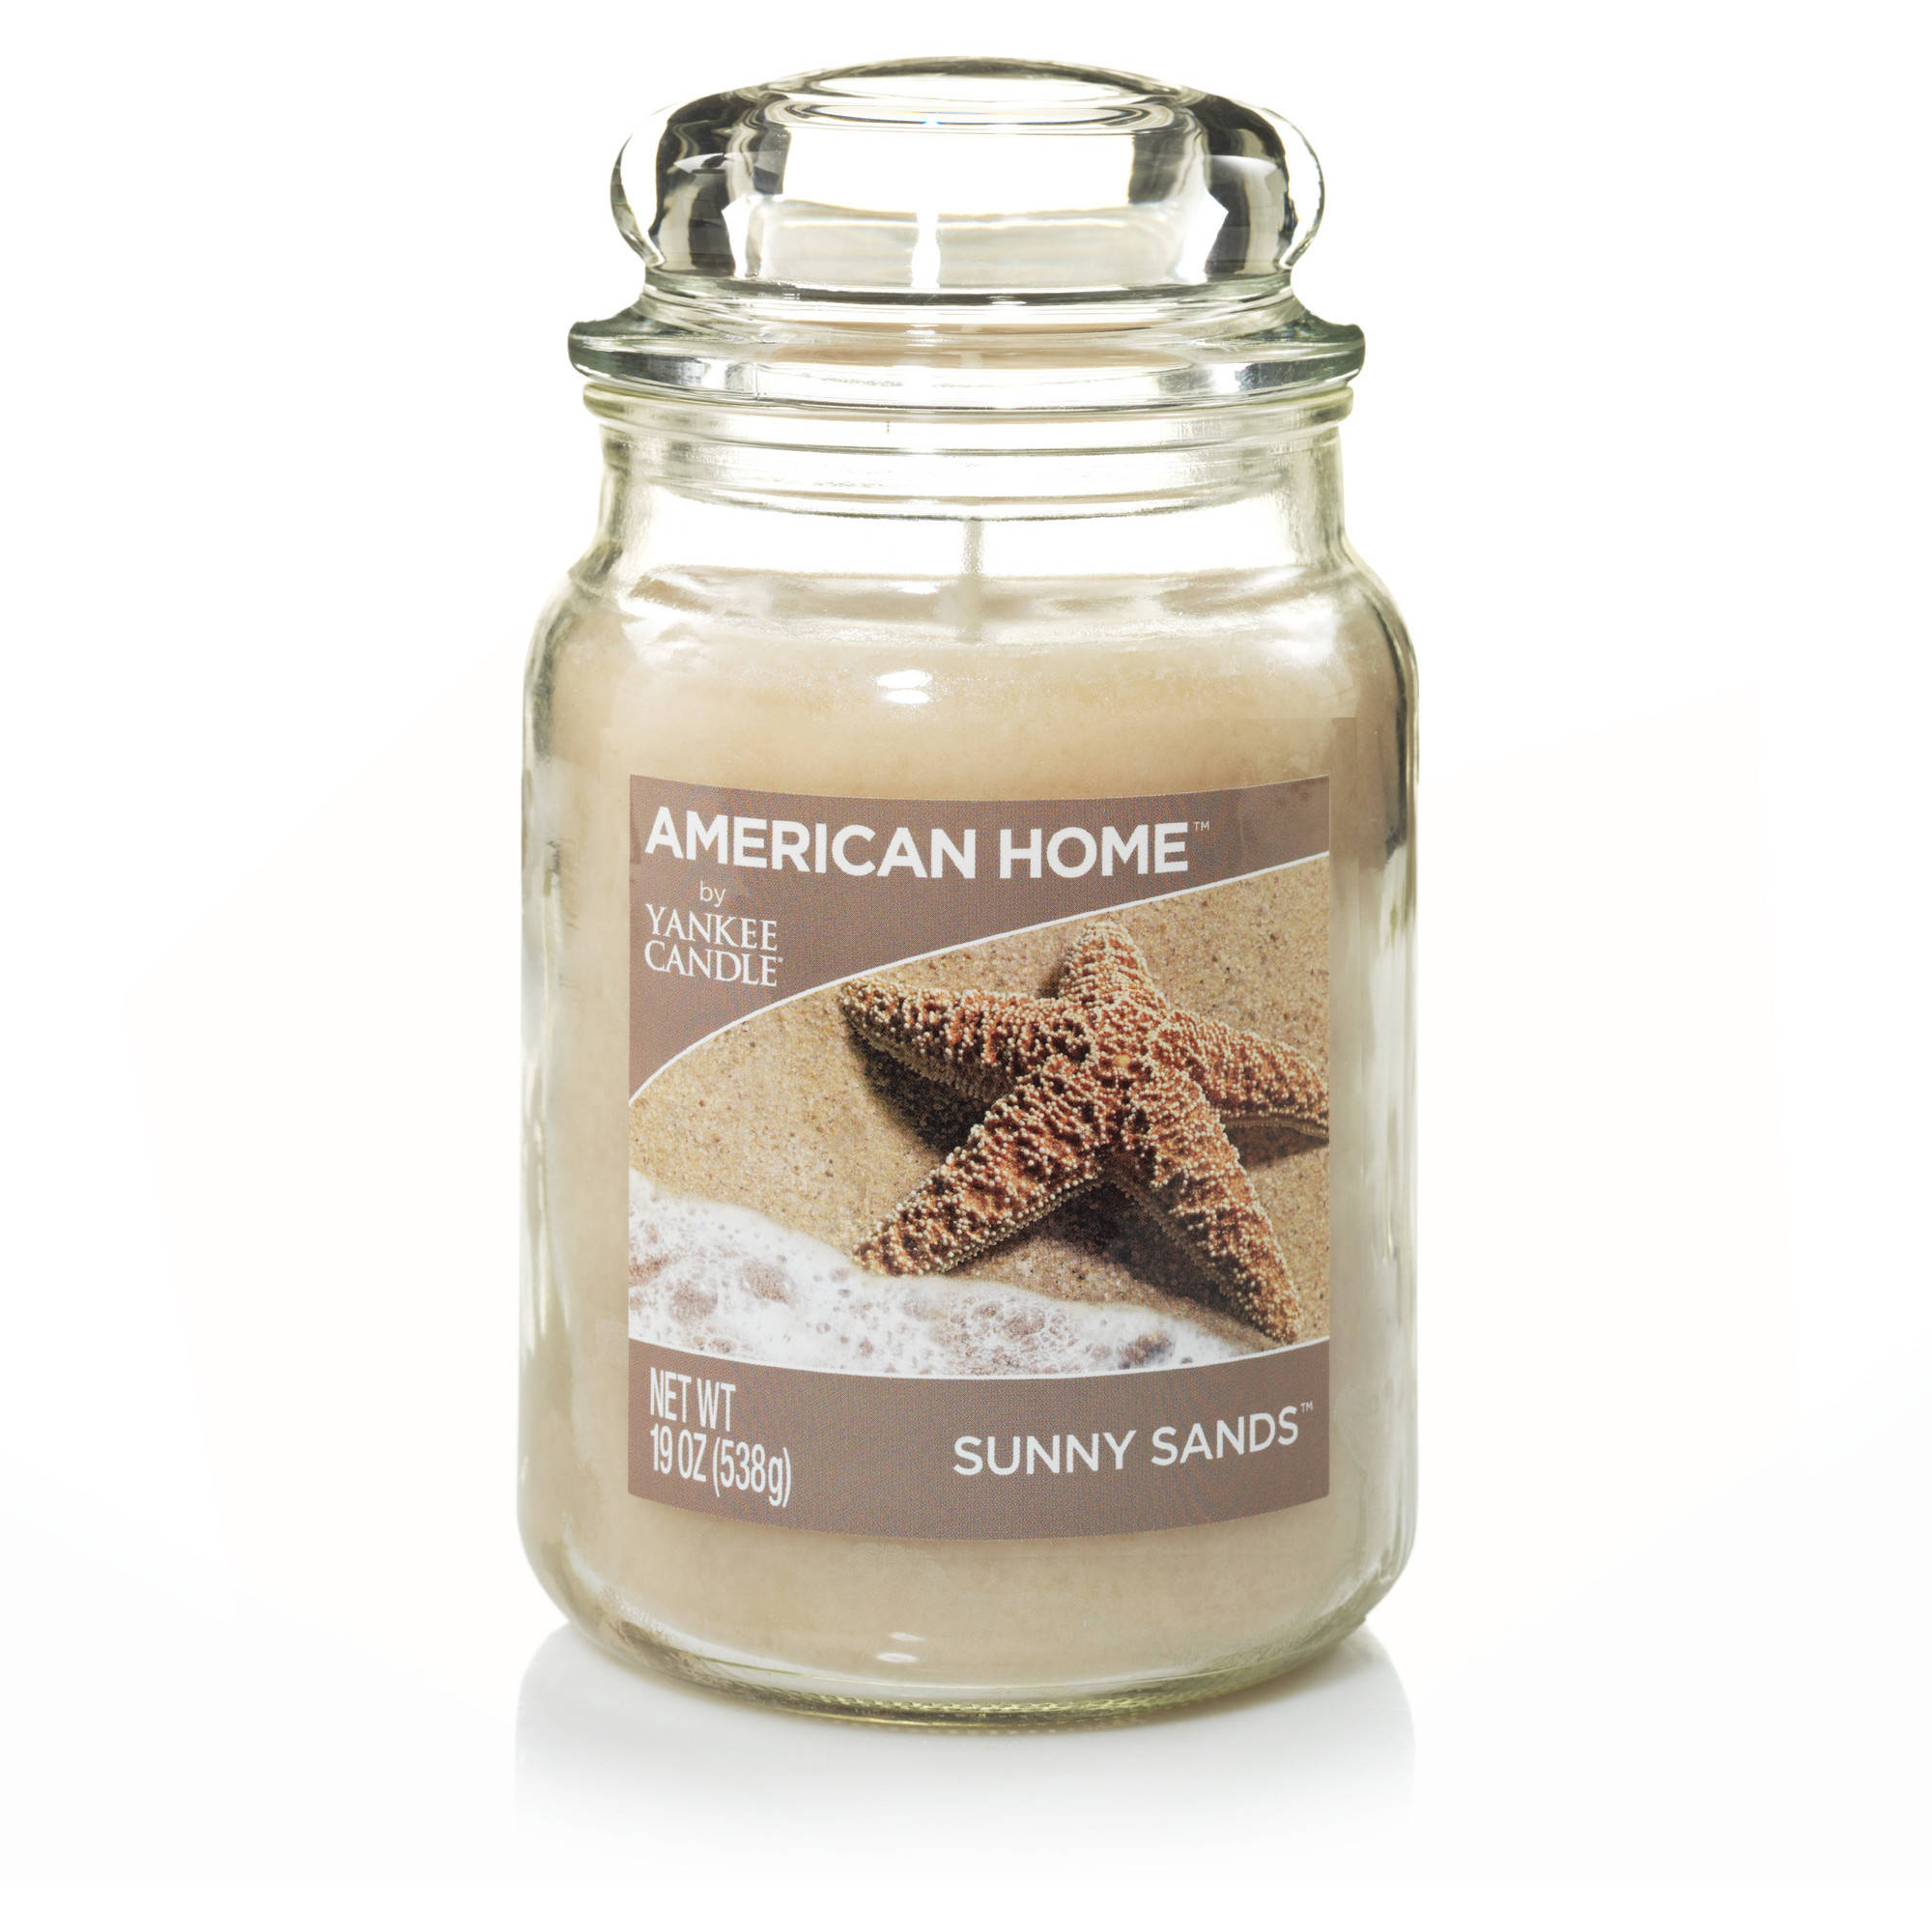 JARDEN CORPORATION American Home by Yankee Candle Sunny Sands, 19 oz Large Jar